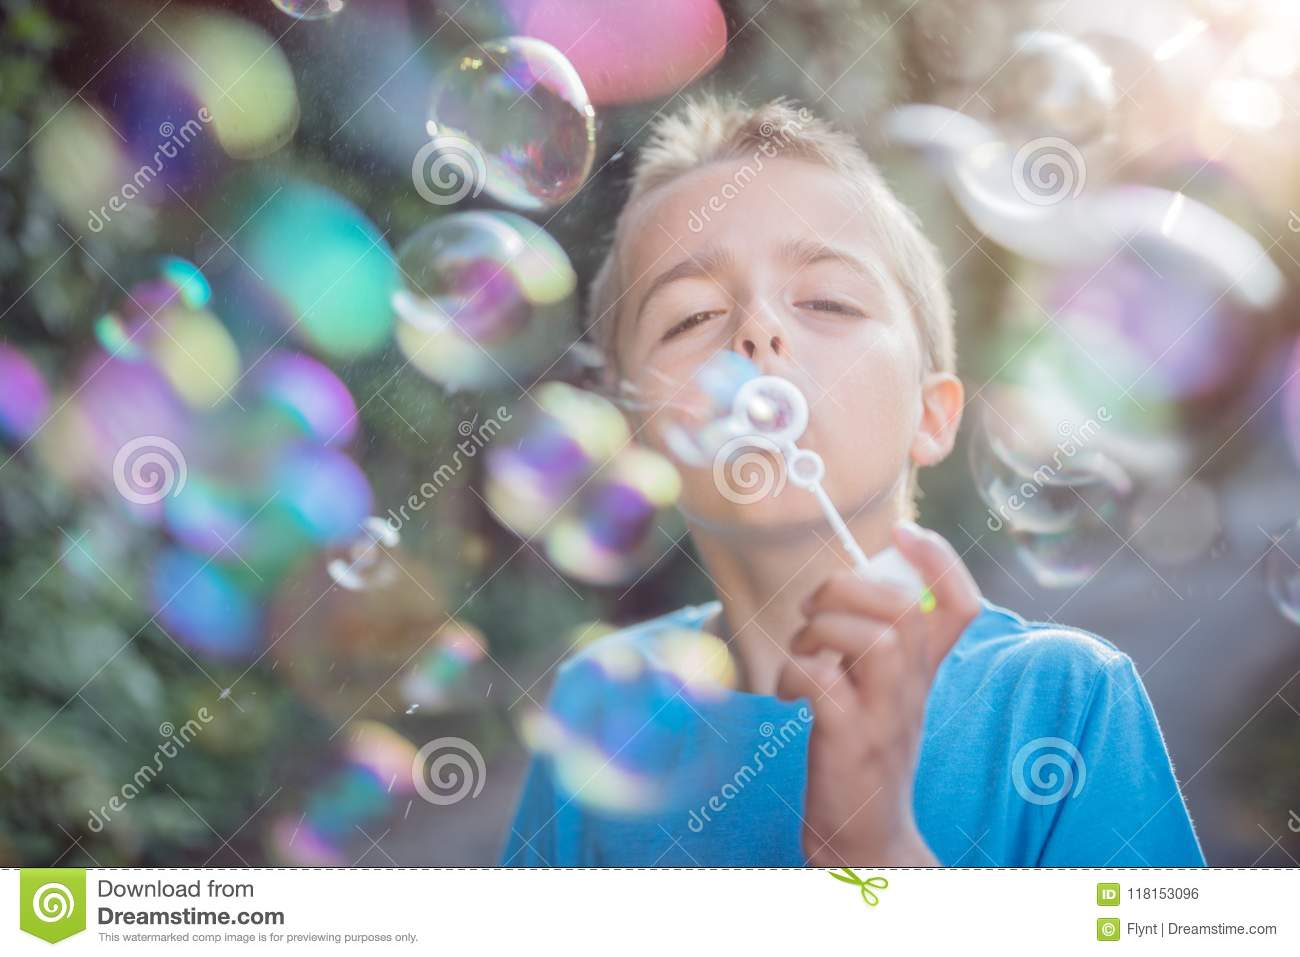 Blowing soap bubbles in the summer sun